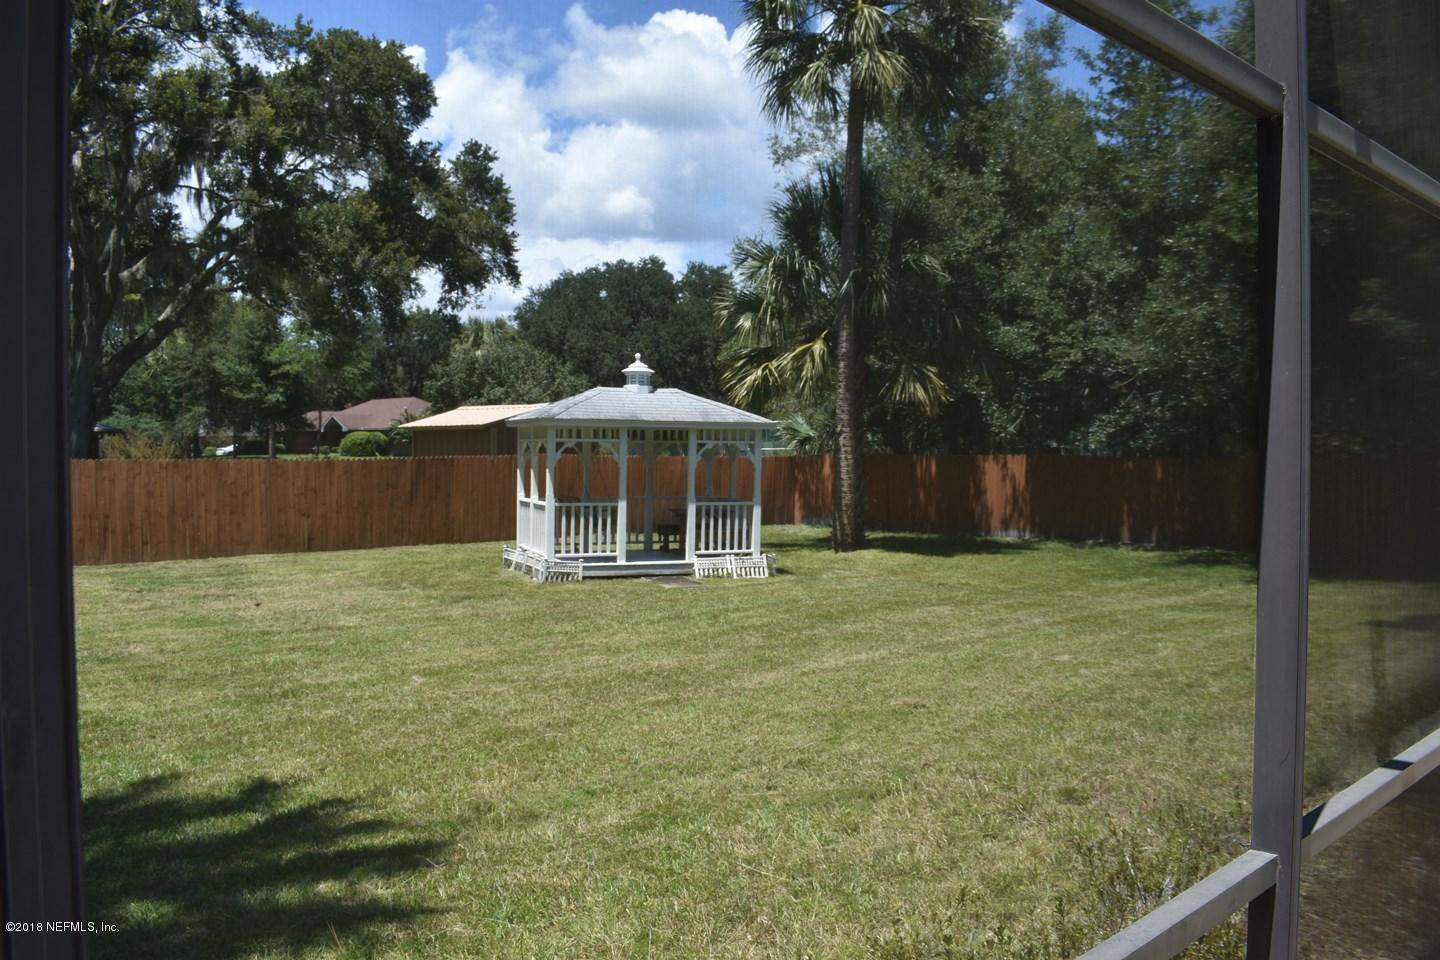 201 HORSEMAN CLUB, PALATKA, FLORIDA 32177, 3 Bedrooms Bedrooms, ,2 BathroomsBathrooms,Residential - single family,For sale,HORSEMAN CLUB,952854